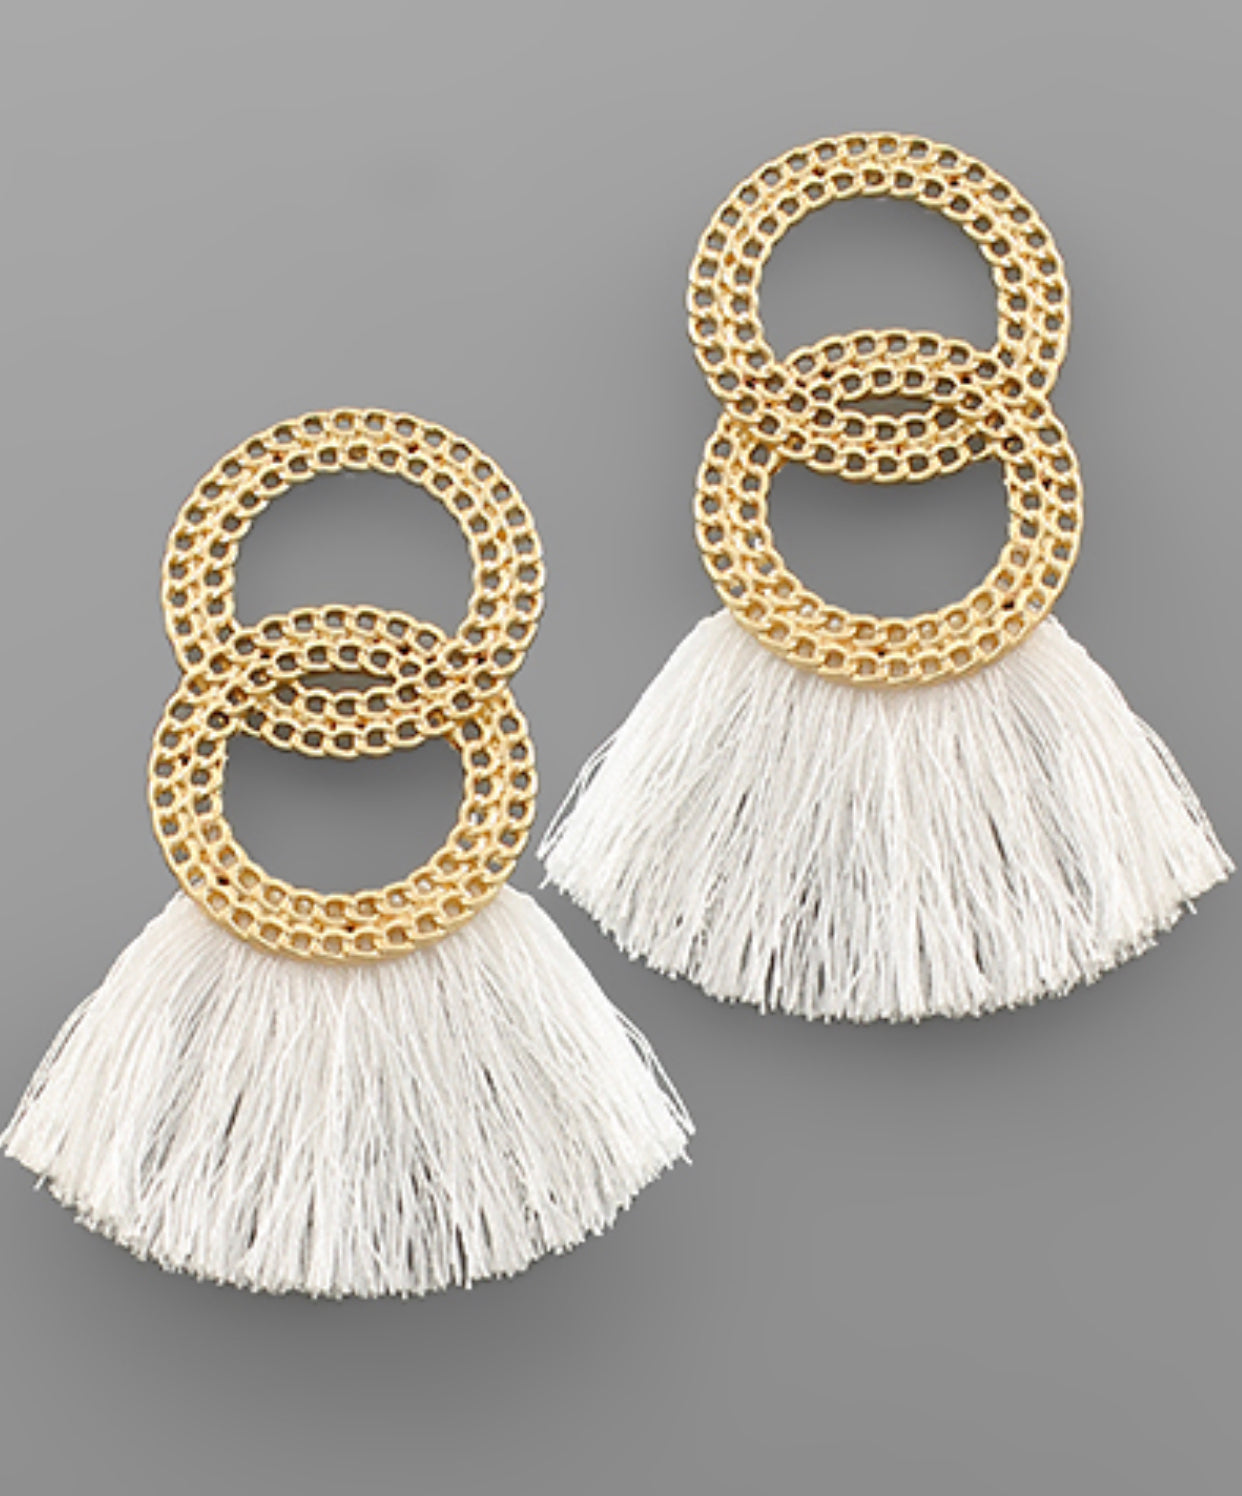 2 Chain Circle & Tassel Earrings